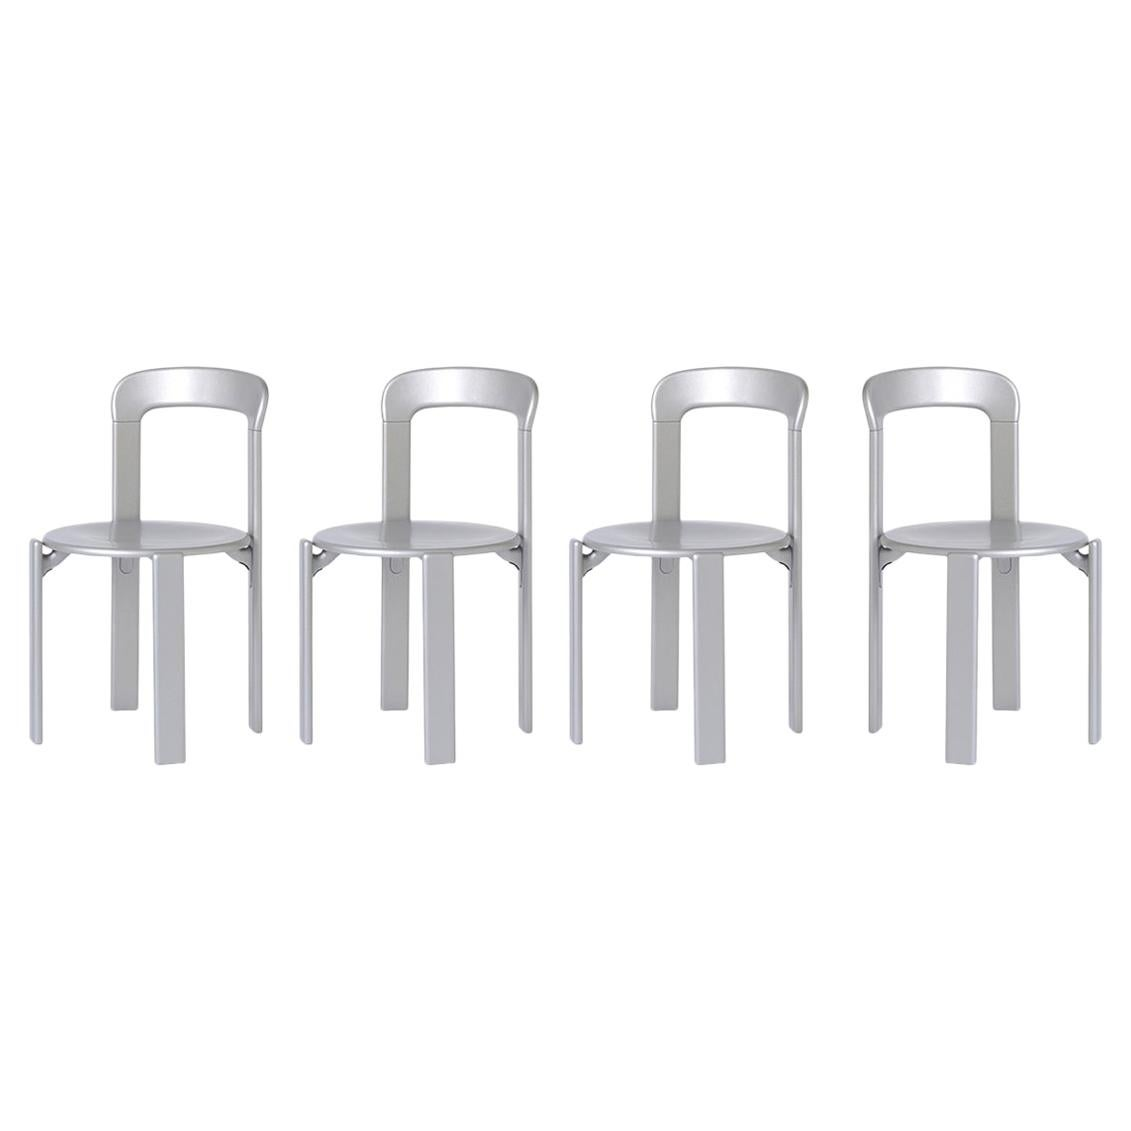 Set of 4 Silver Rey Chairs by Dietiker, a Swiss Icon, since 1971